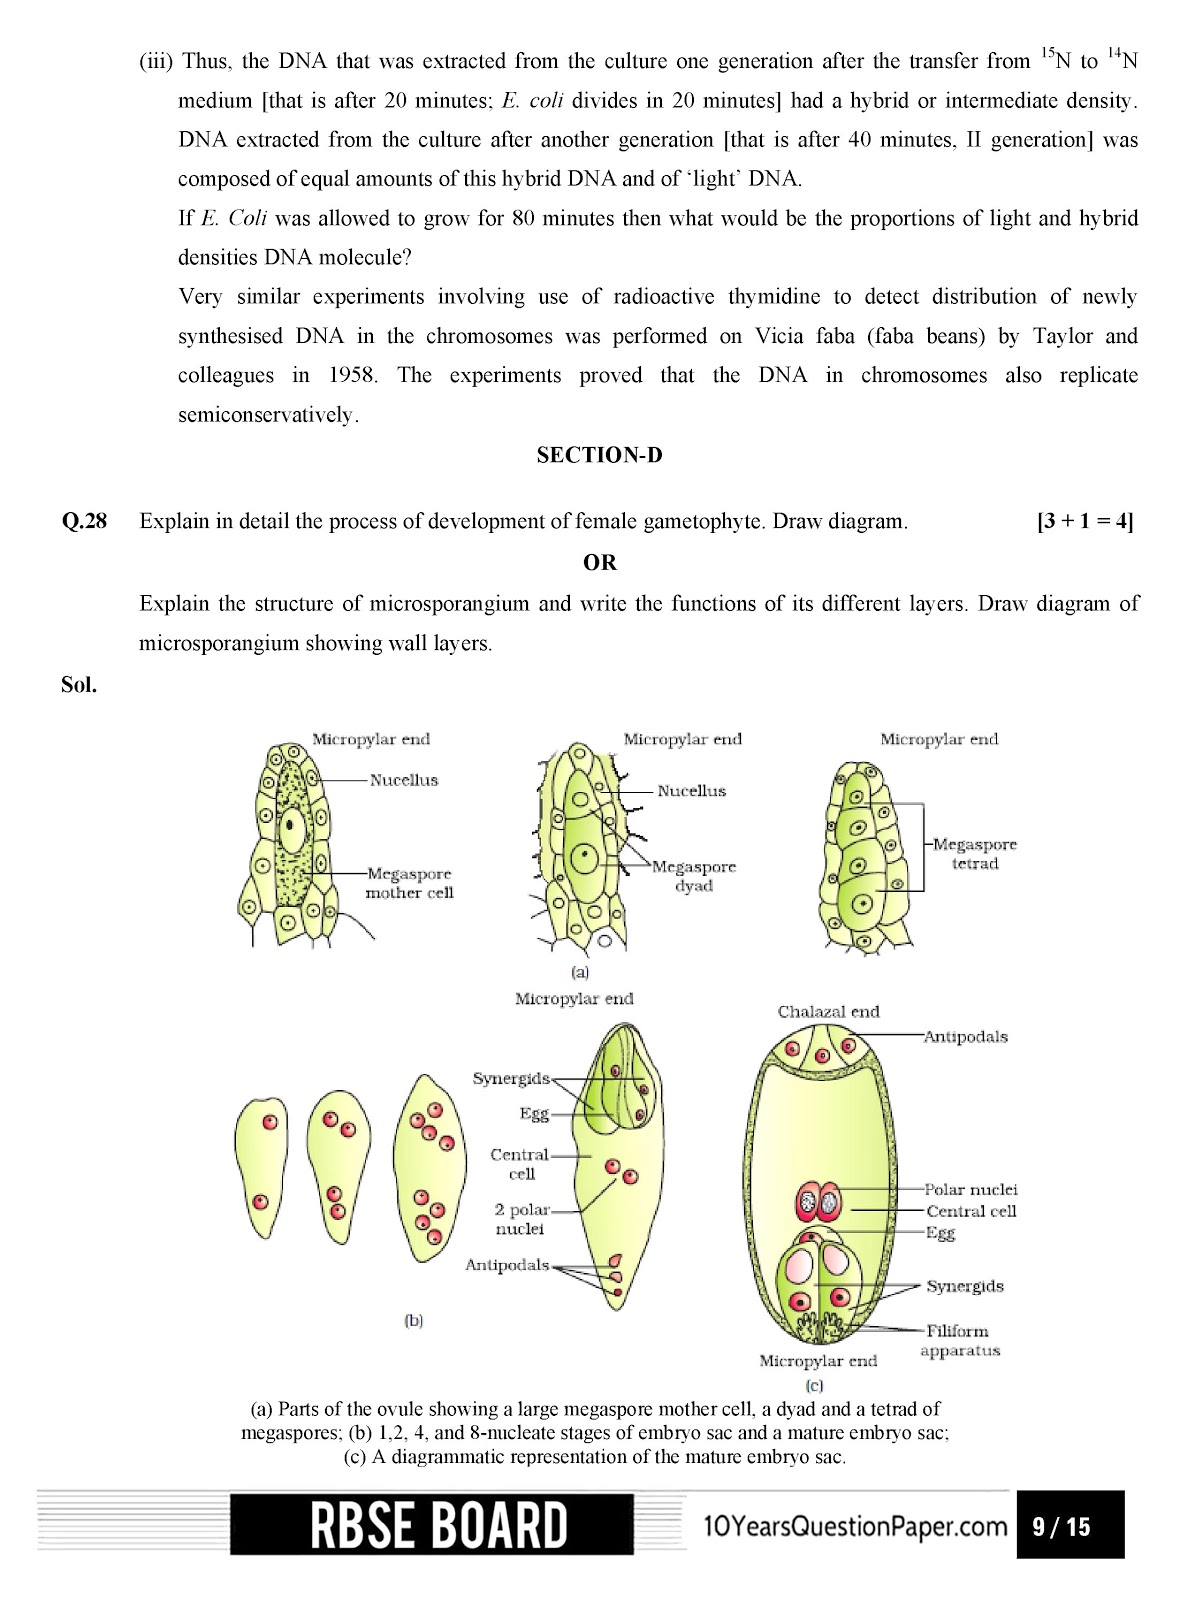 RBSE class 12th 2017 Biology question paper with solution